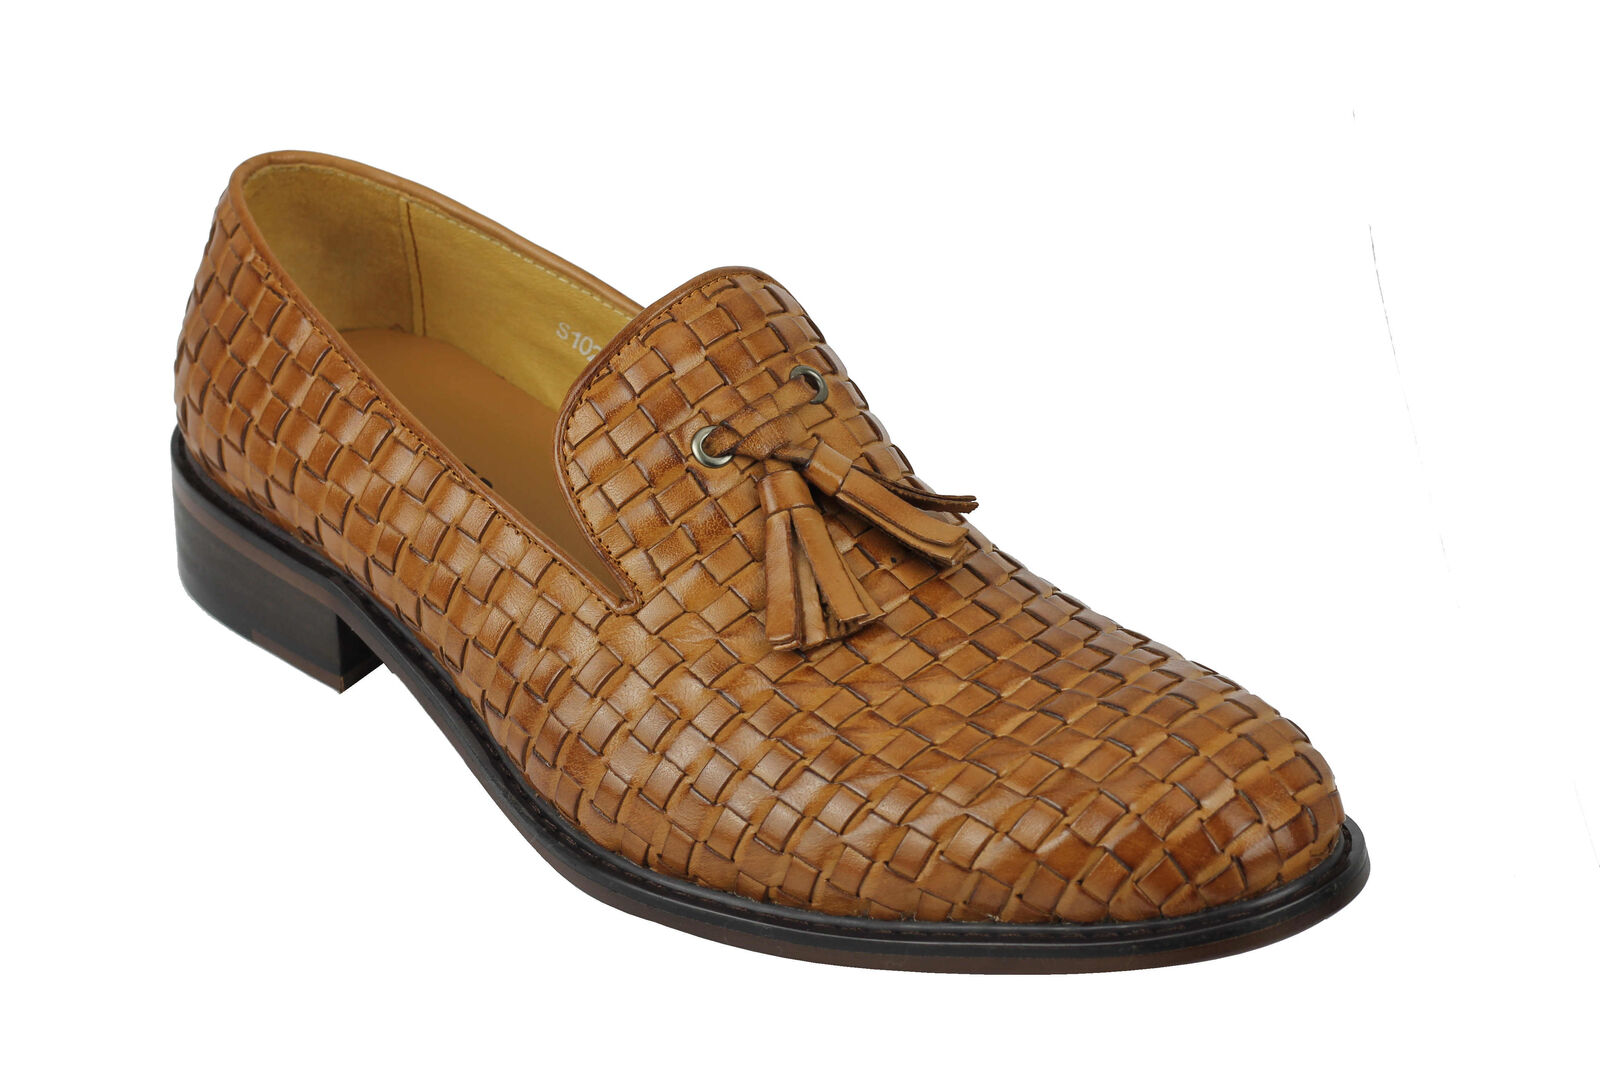 Mens Vintage Handmade Tan Brown Real Leather Woven Tassel Loafers Slip on Shoes